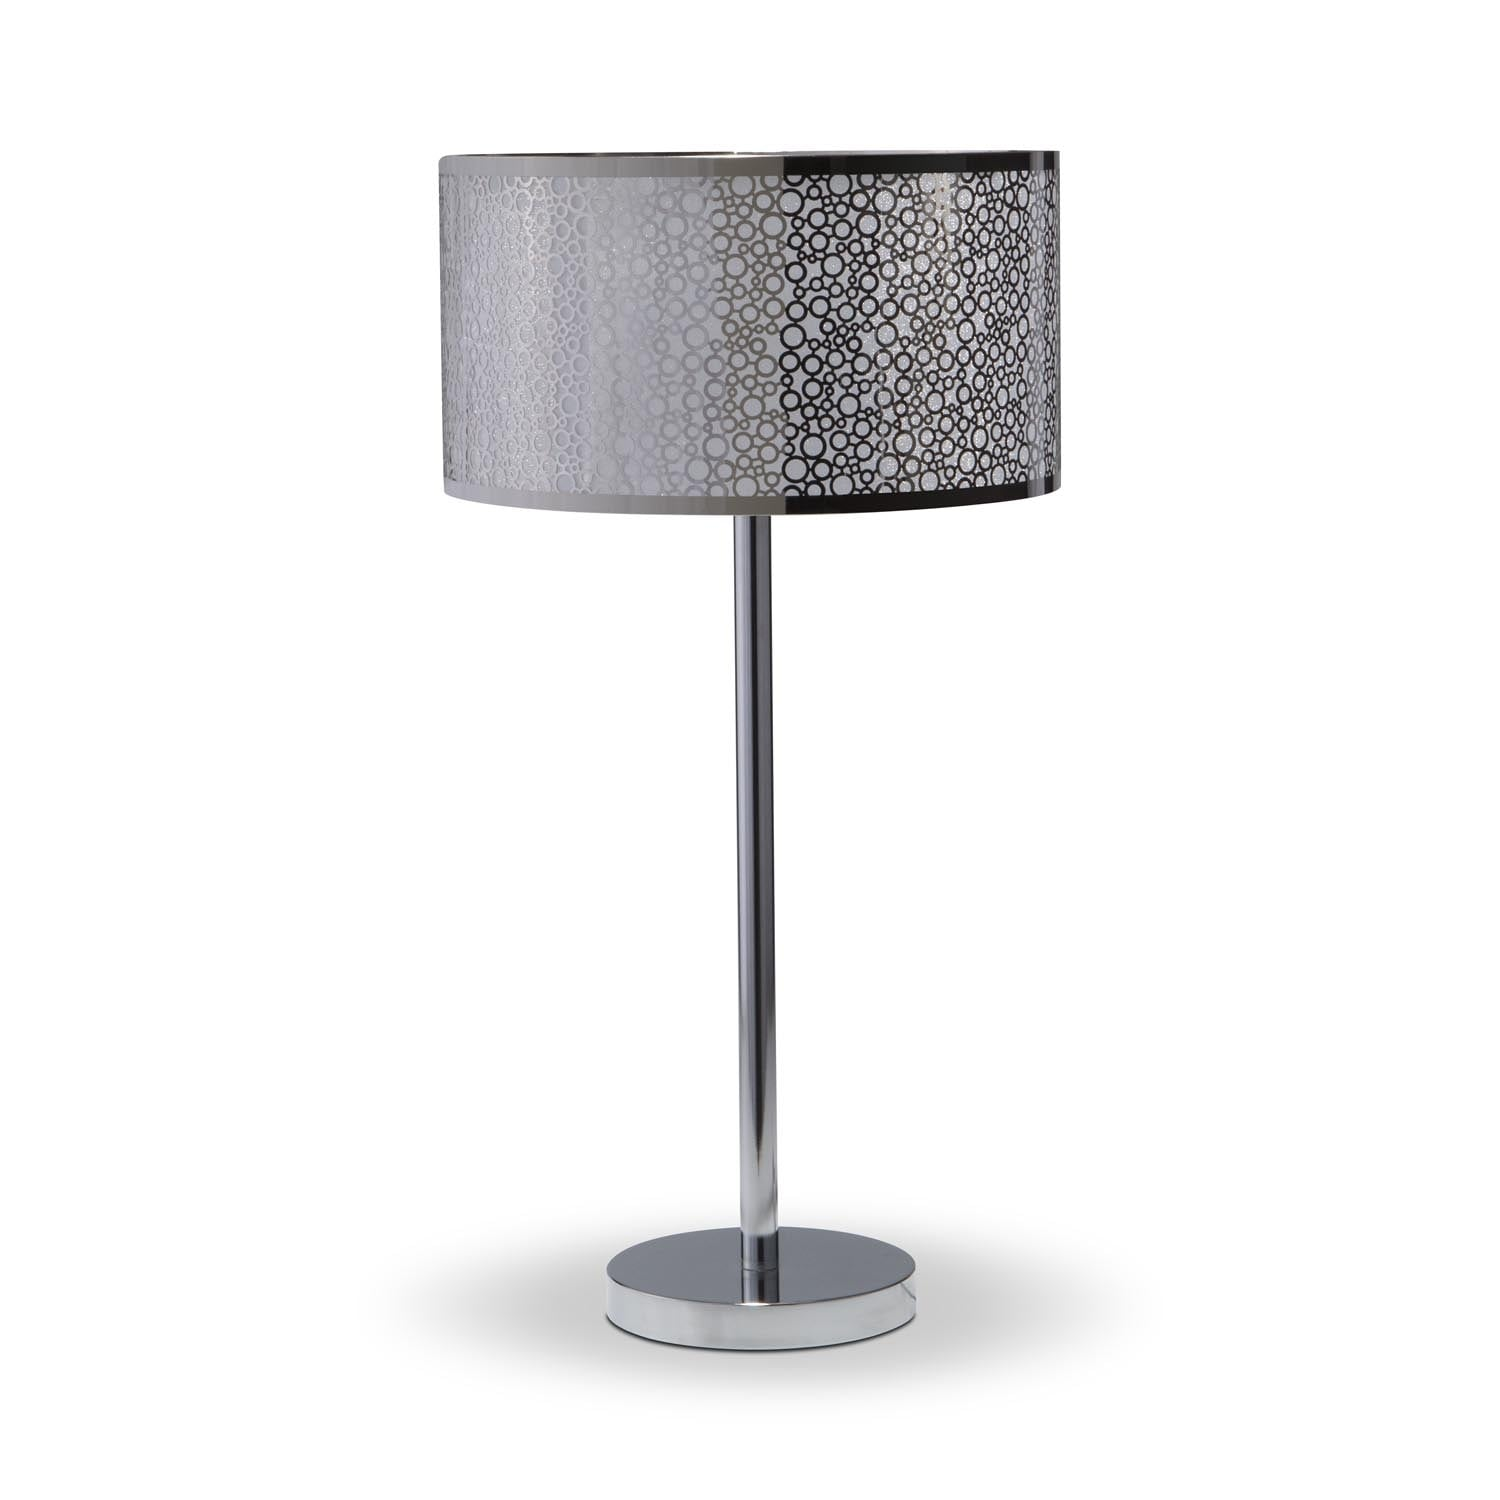 Accent Lighting Of Contemporary Table Lamps For Living: Silver Circles Table Lamp